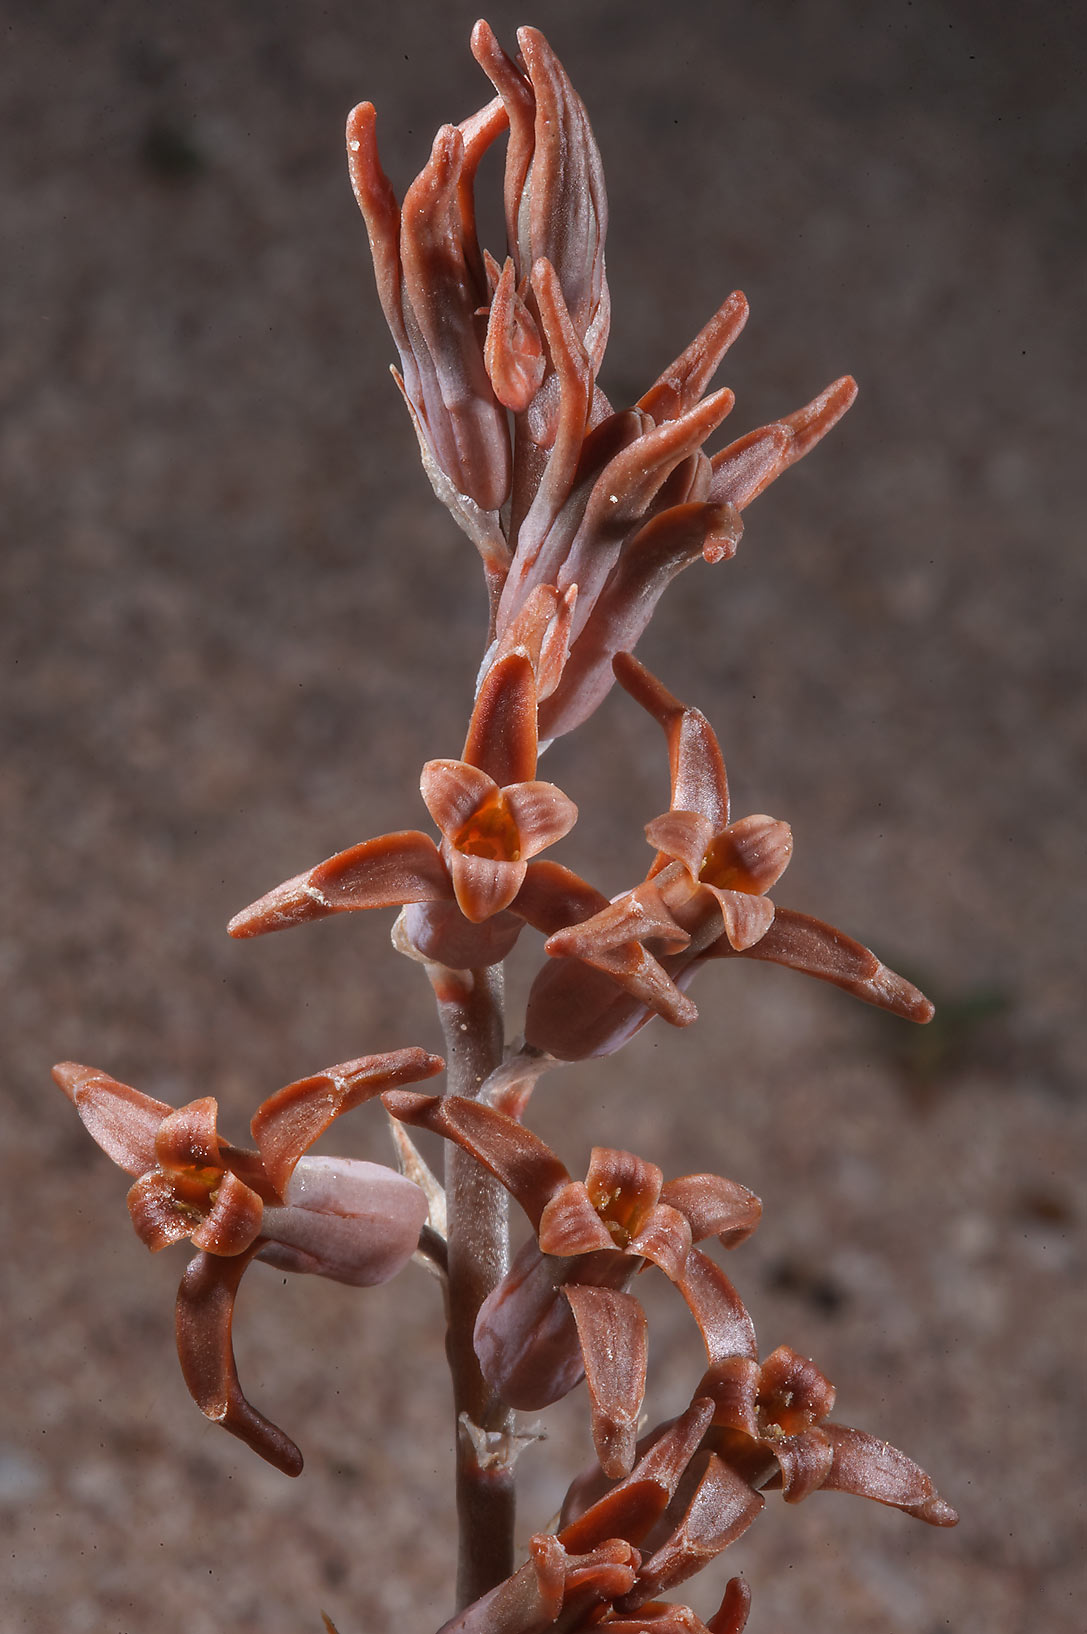 Inflorescence of brown lily (Dipcadi erythraeum...Jarra north-east from Dukhan. Qatar